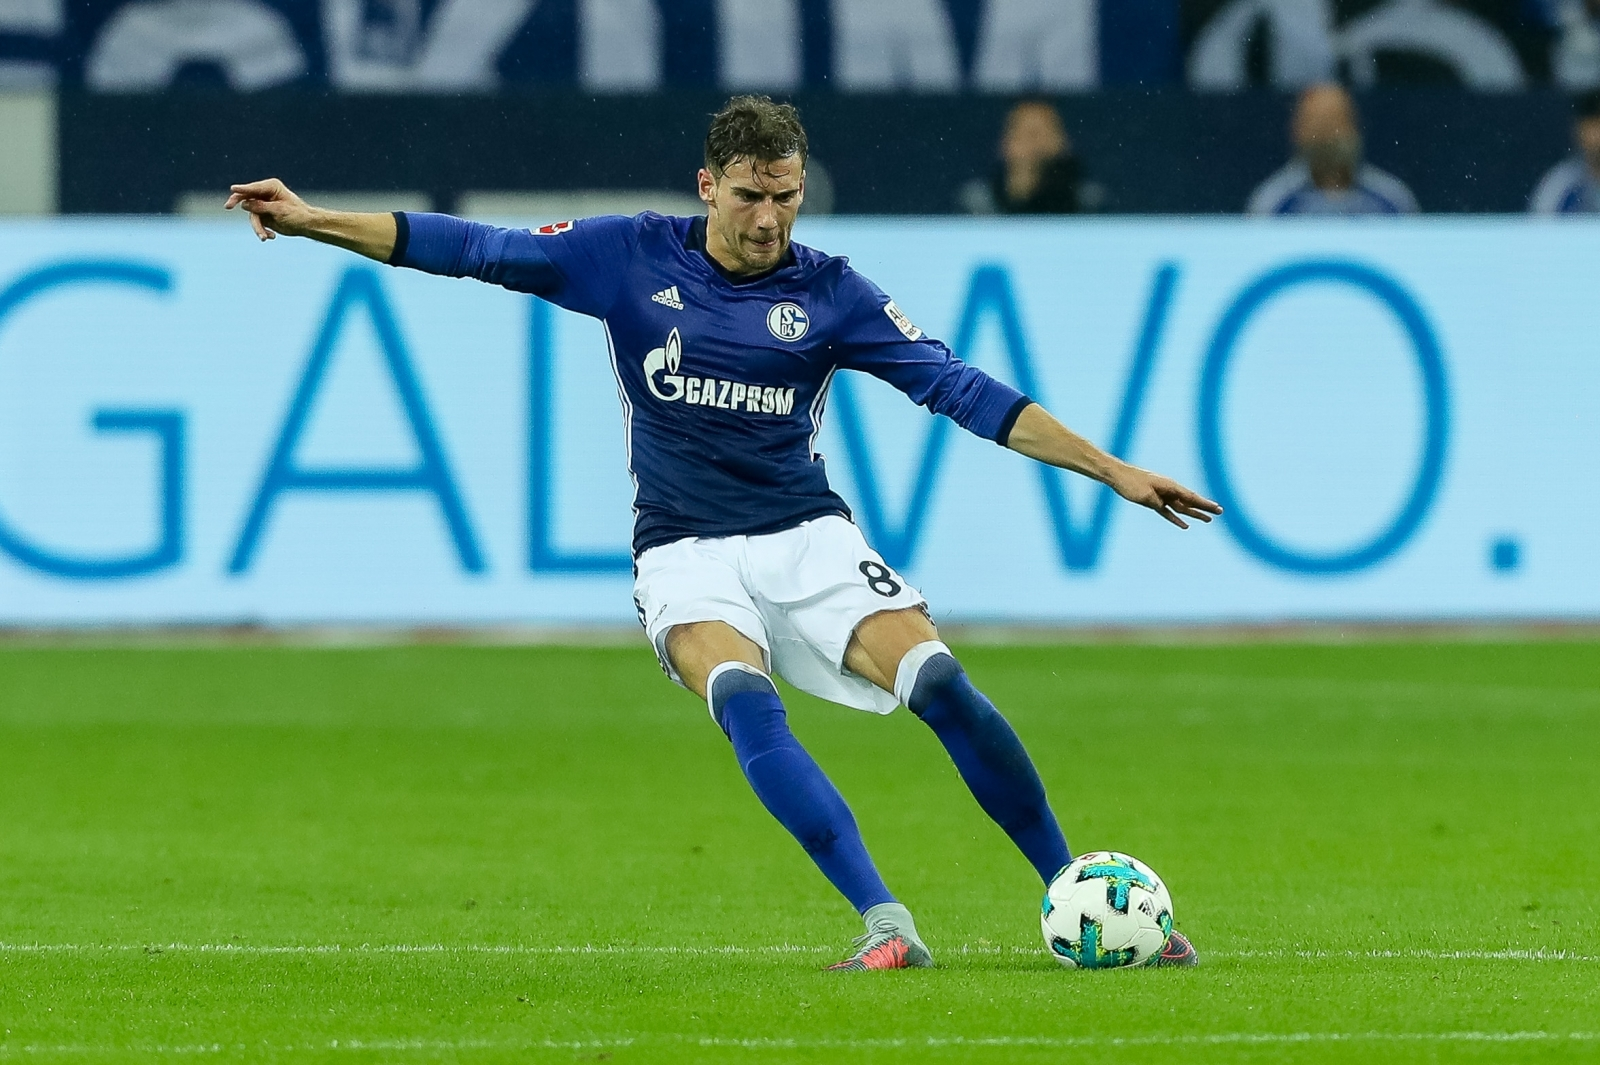 Manchester United transfer boost as Barcelona rule out Leon Goretzka signing